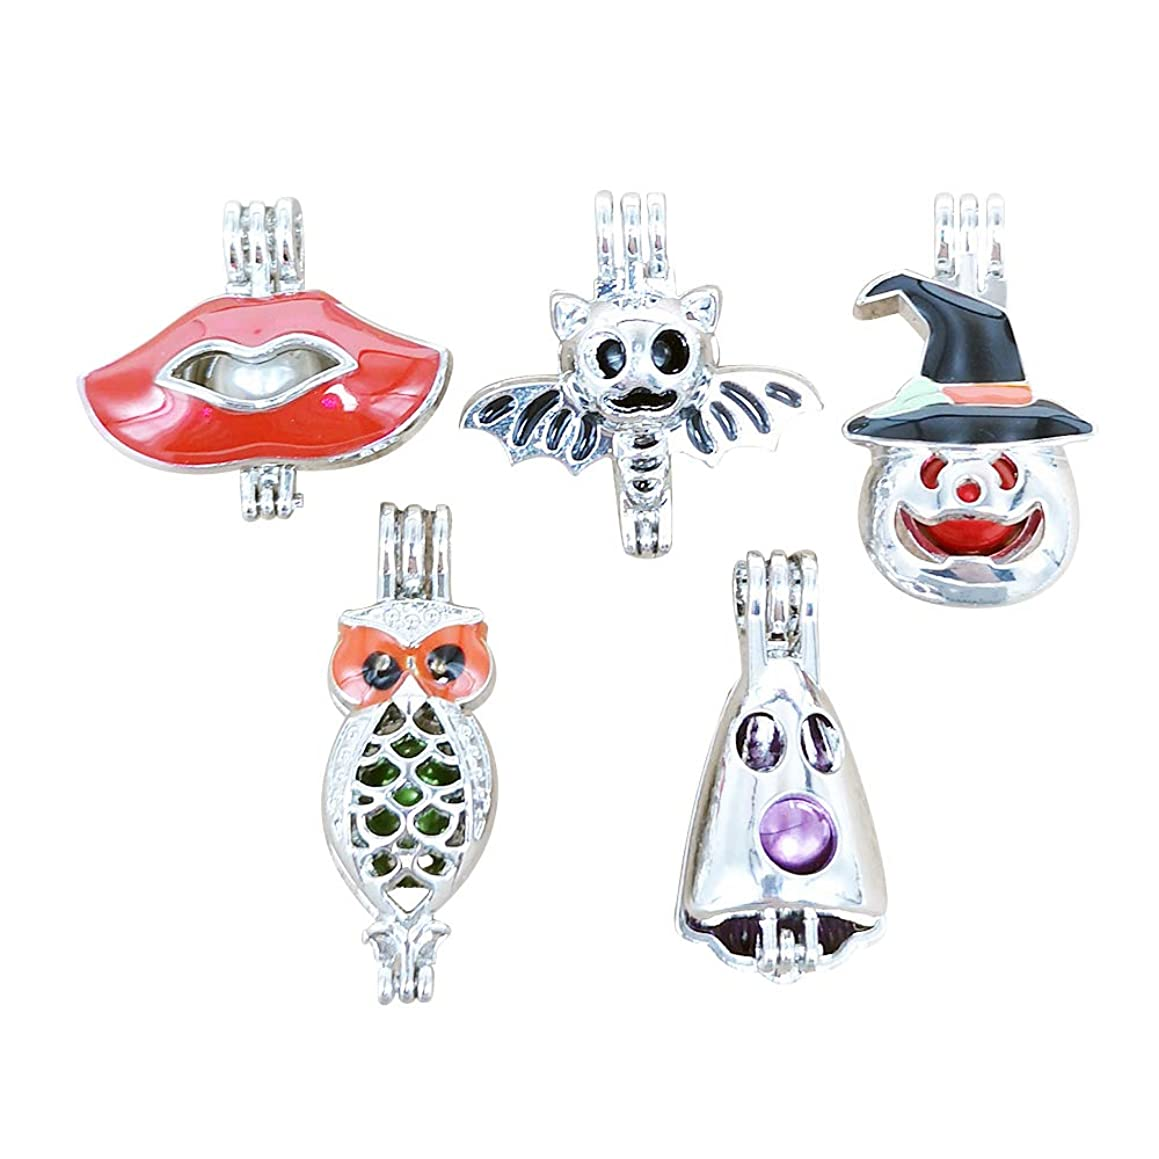 Dandan DIY 5pcs Halloween Spider Owl Pumpkin Assorted Styles Hollow Diffuser Locket Alloy Cage Perfume Essential Oil Aromatherapy Diffuser Charms Pendant Craft Diffusion Ball